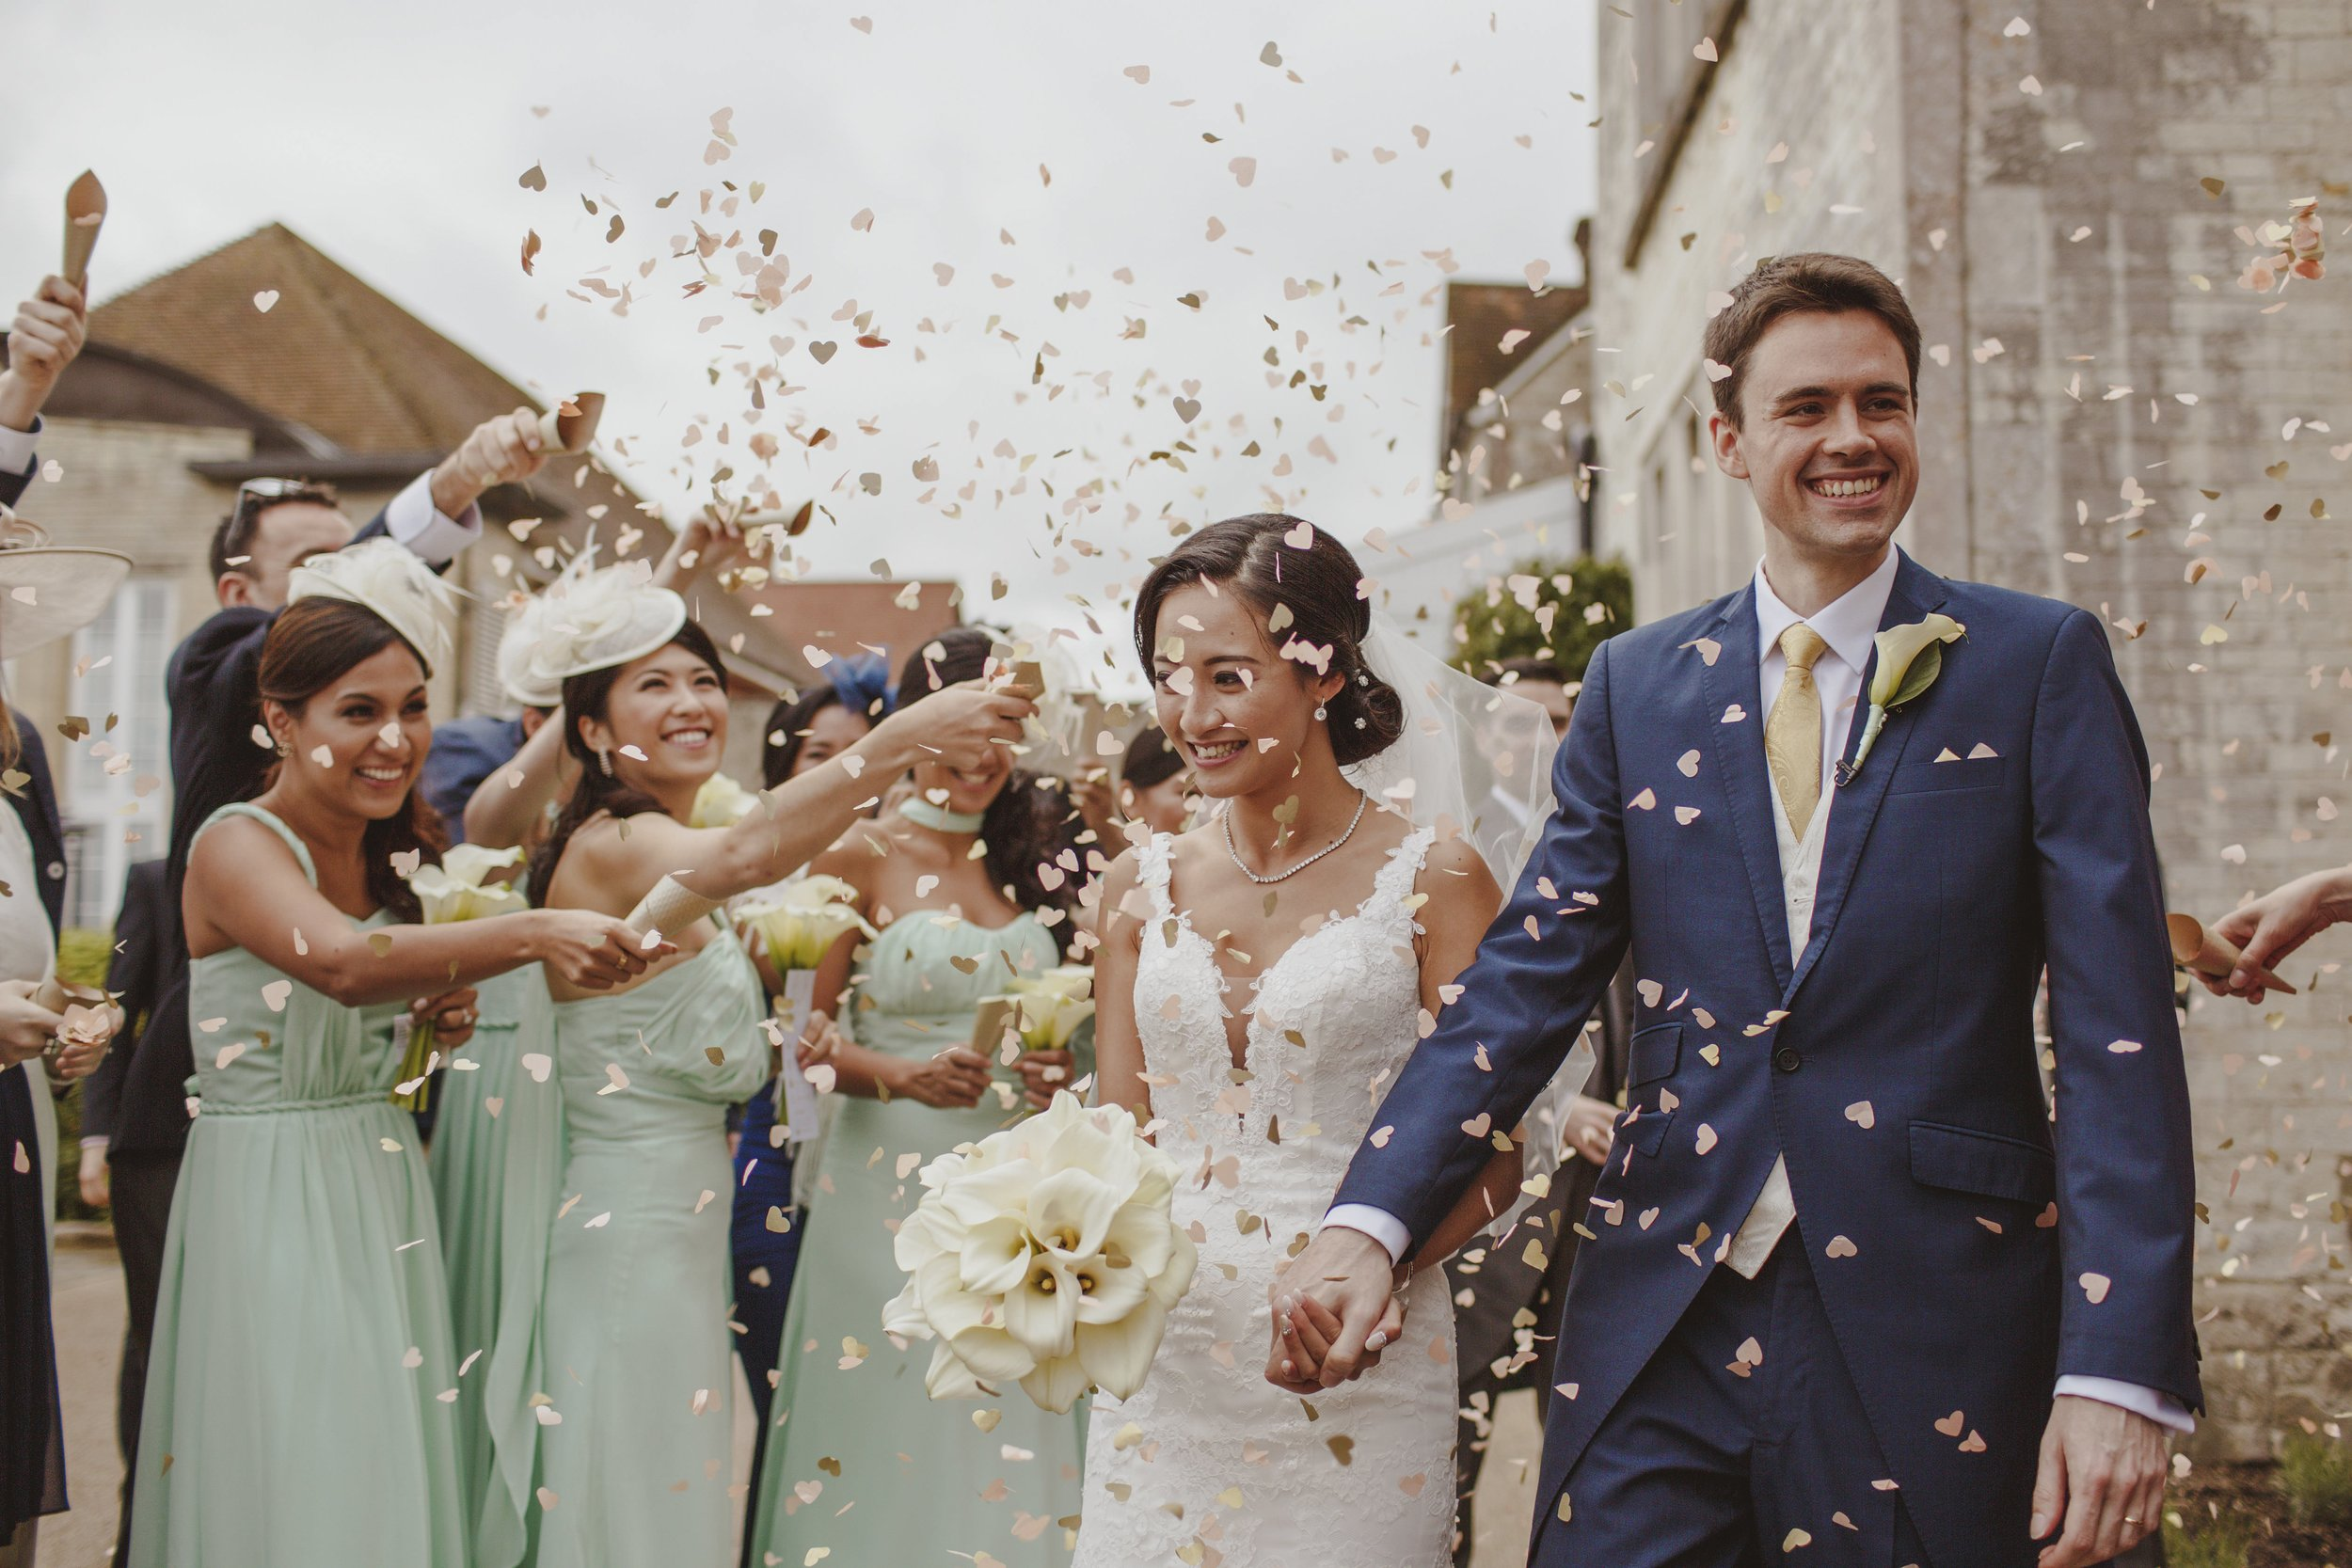 Wedding Make up artist and hair stylist based in Chelmsford